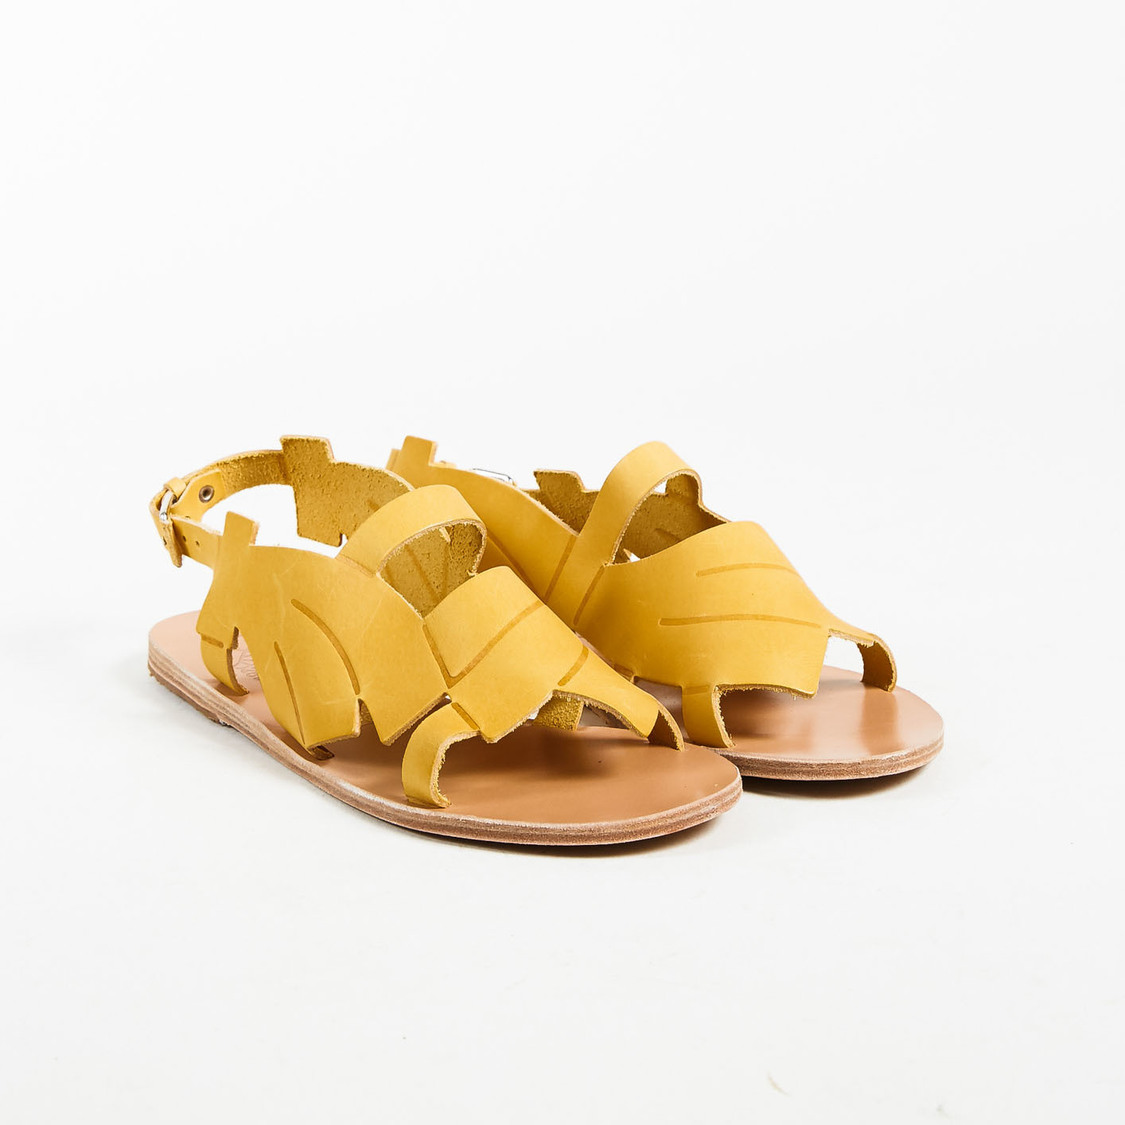 c1aed626e6a62 Details about Ancient Greek Sandals x Carven NWT Yellow Leather